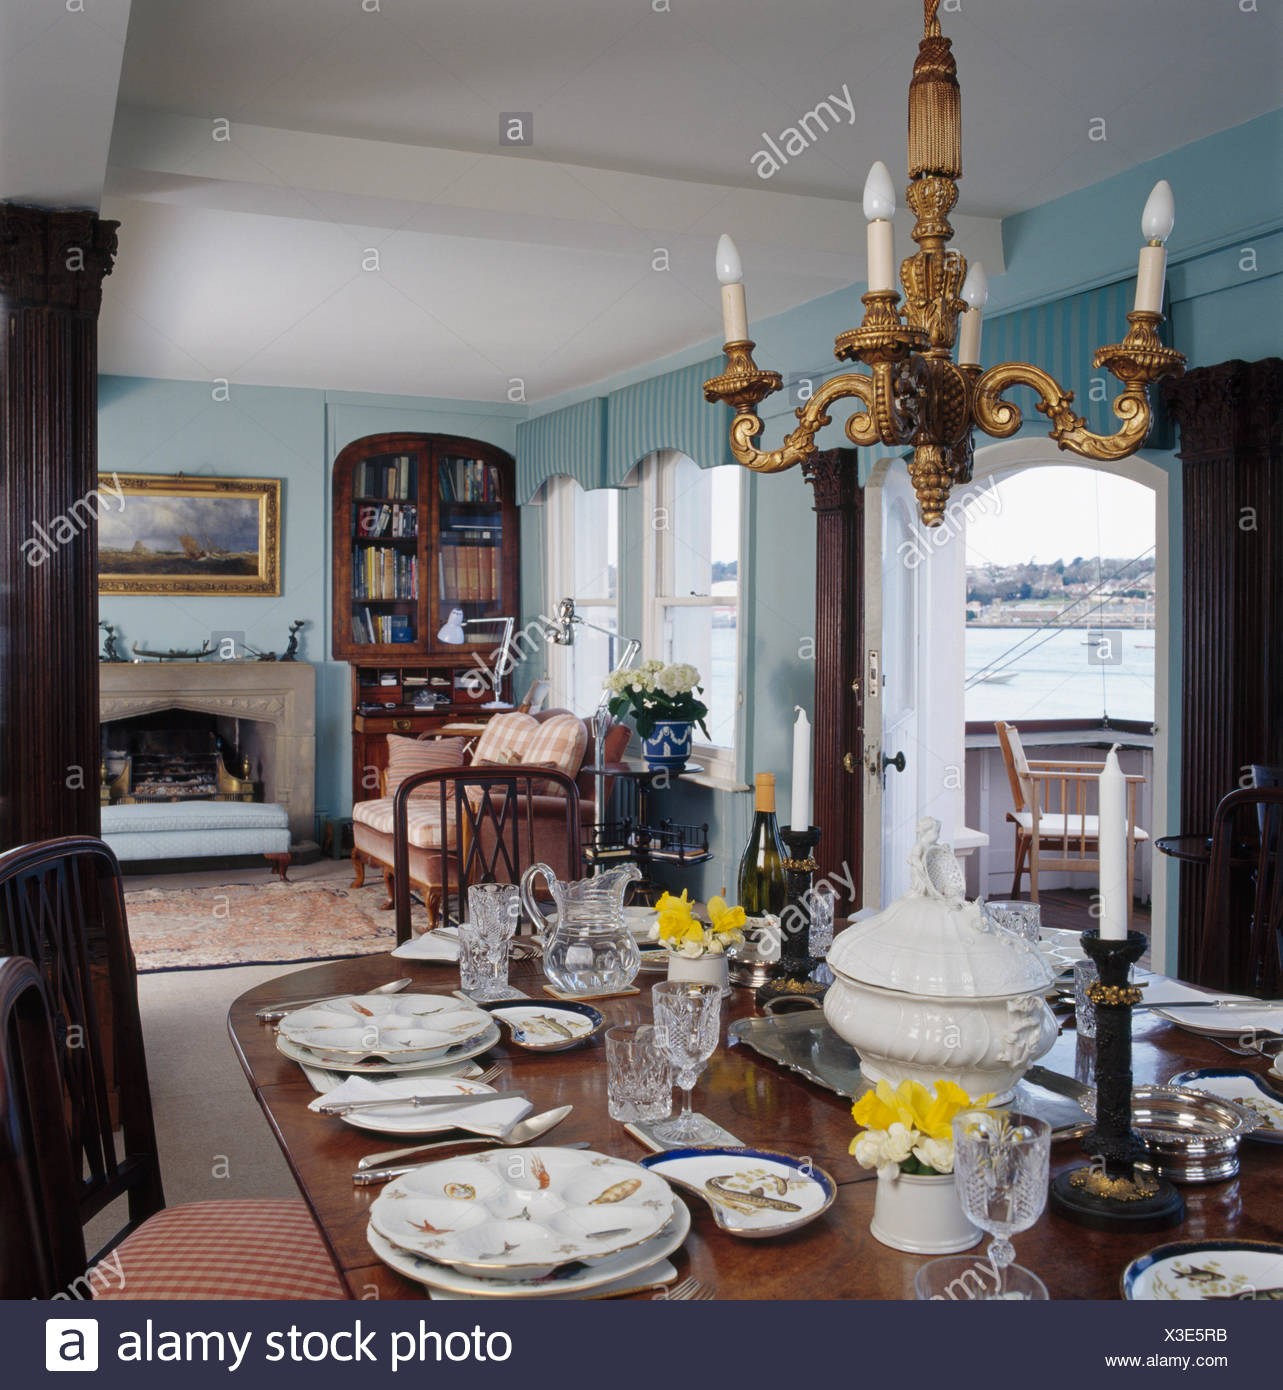 Picture of: Table Set For Lunch In Blue Coastal Dining Room With Gilt Chandelier Stock Photo Alamy